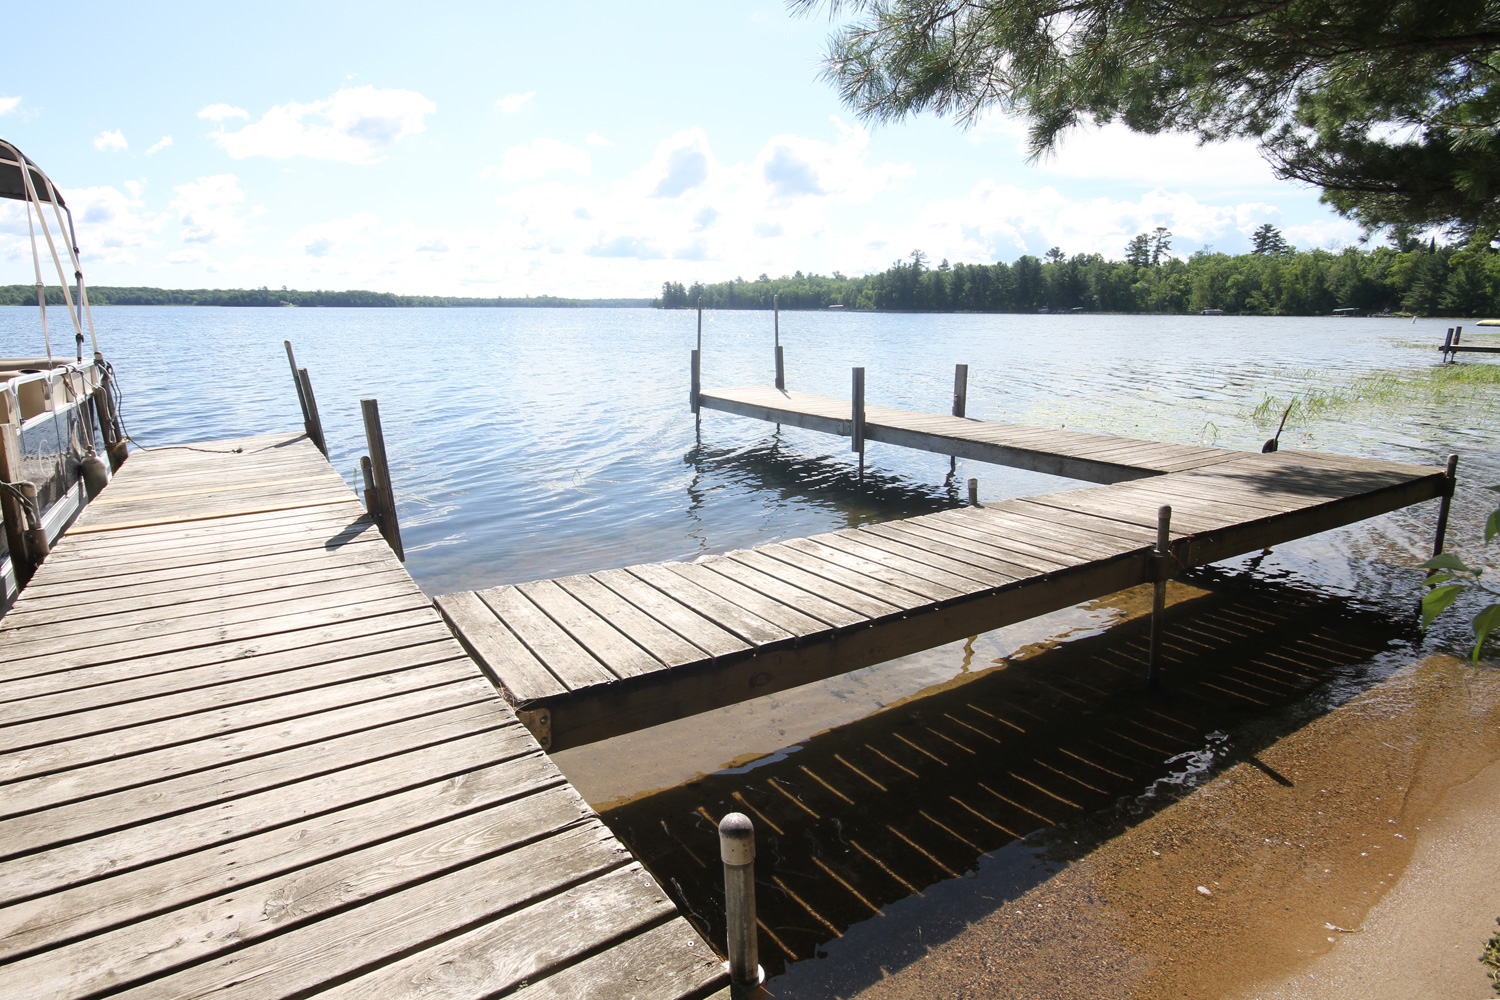 Private dock that accommodates up to 4 boats